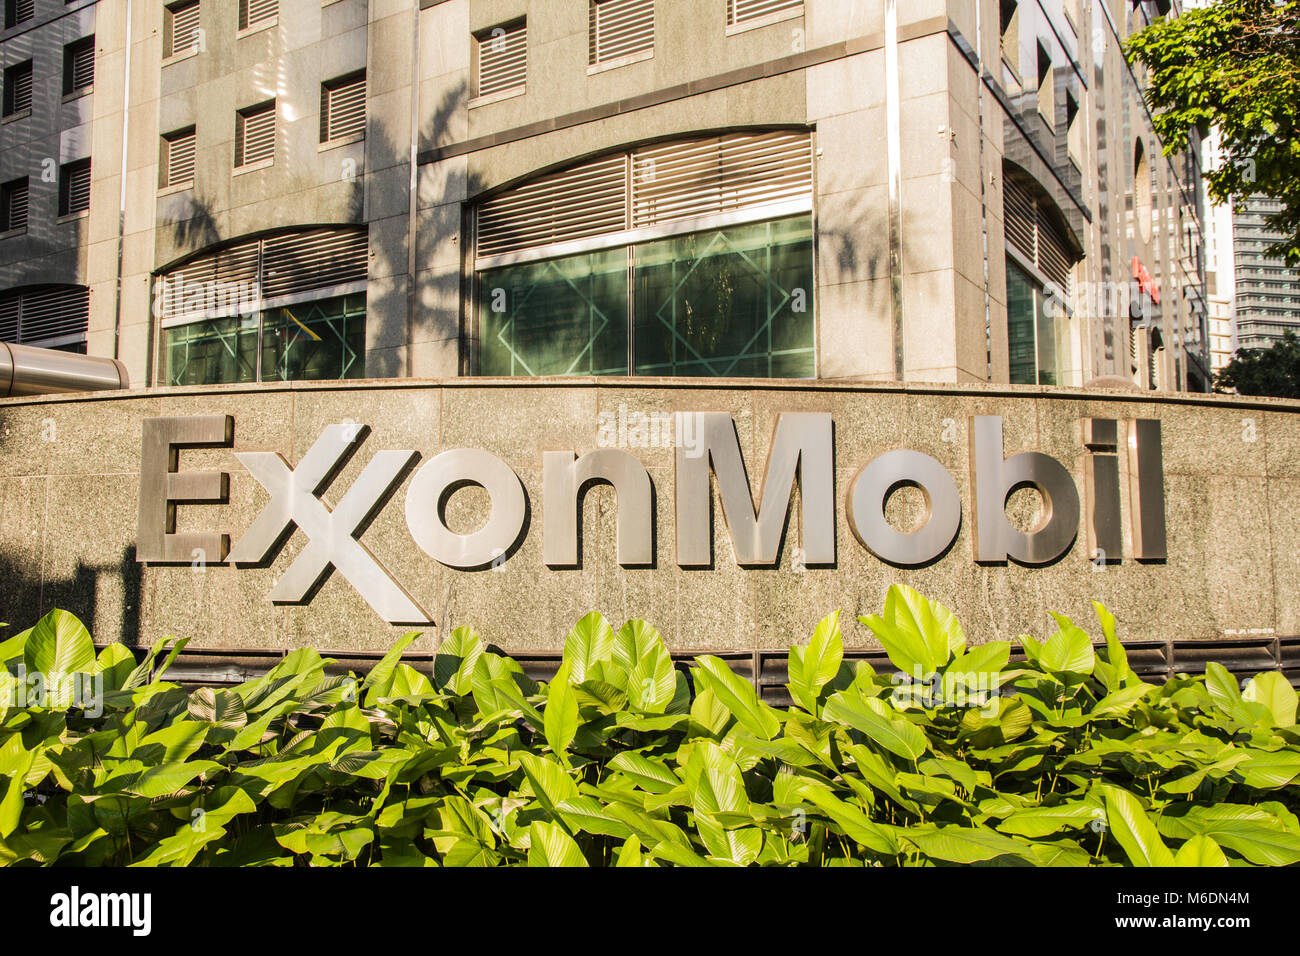 Exxonmobil Stock Photos & Exxonmobil Stock Images - Alamy